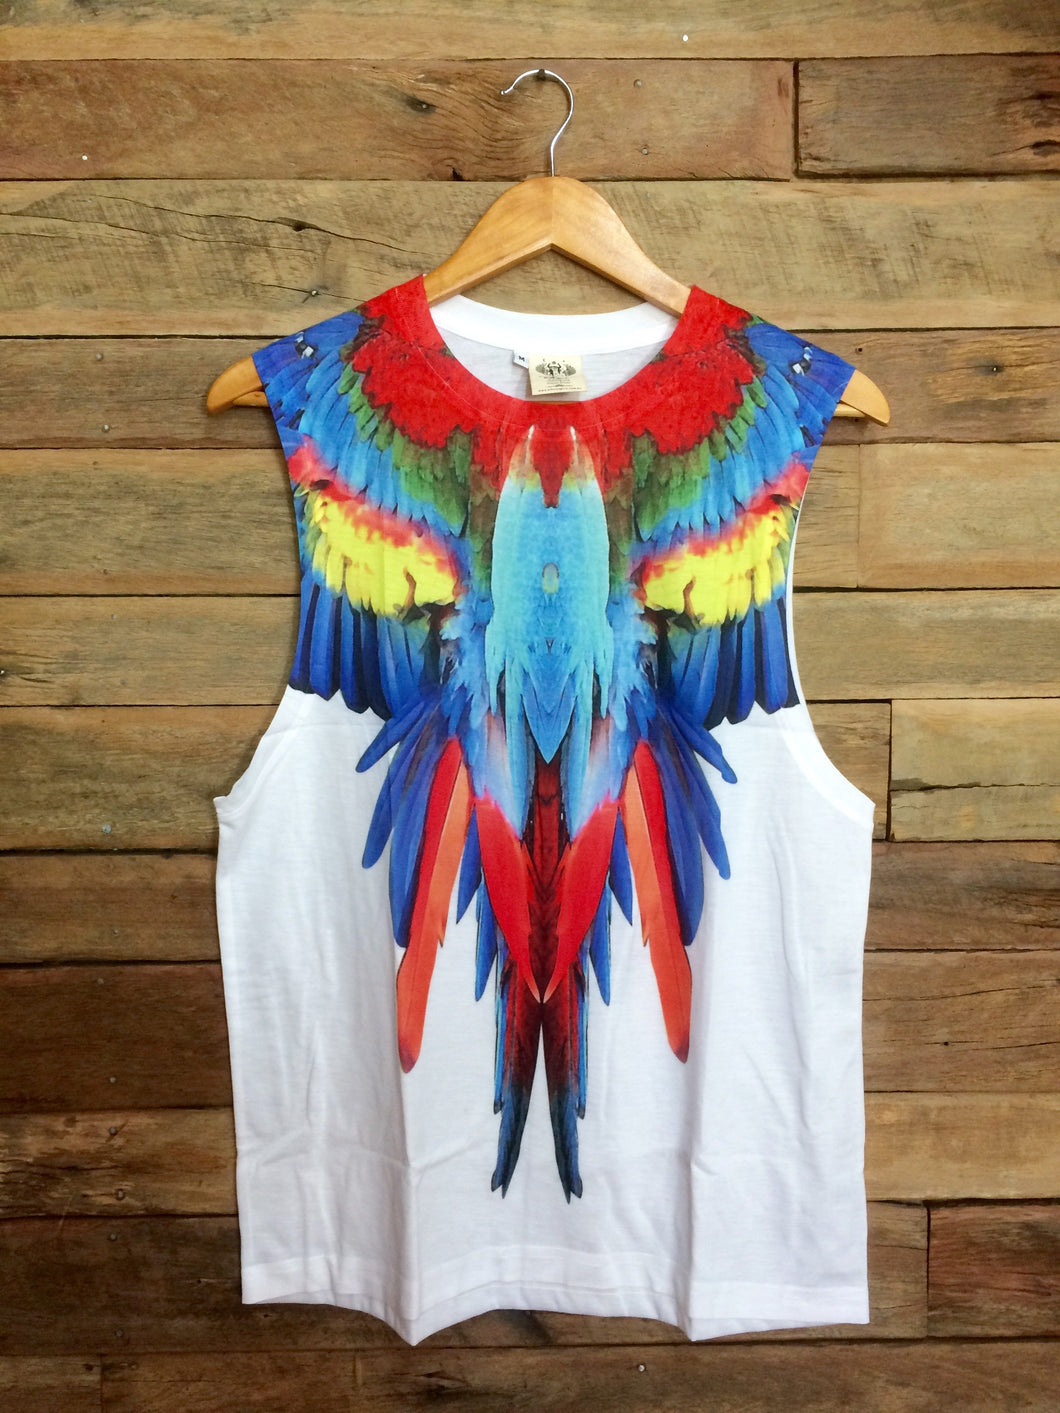 Medium Arty Singlet - Parrot in Flight